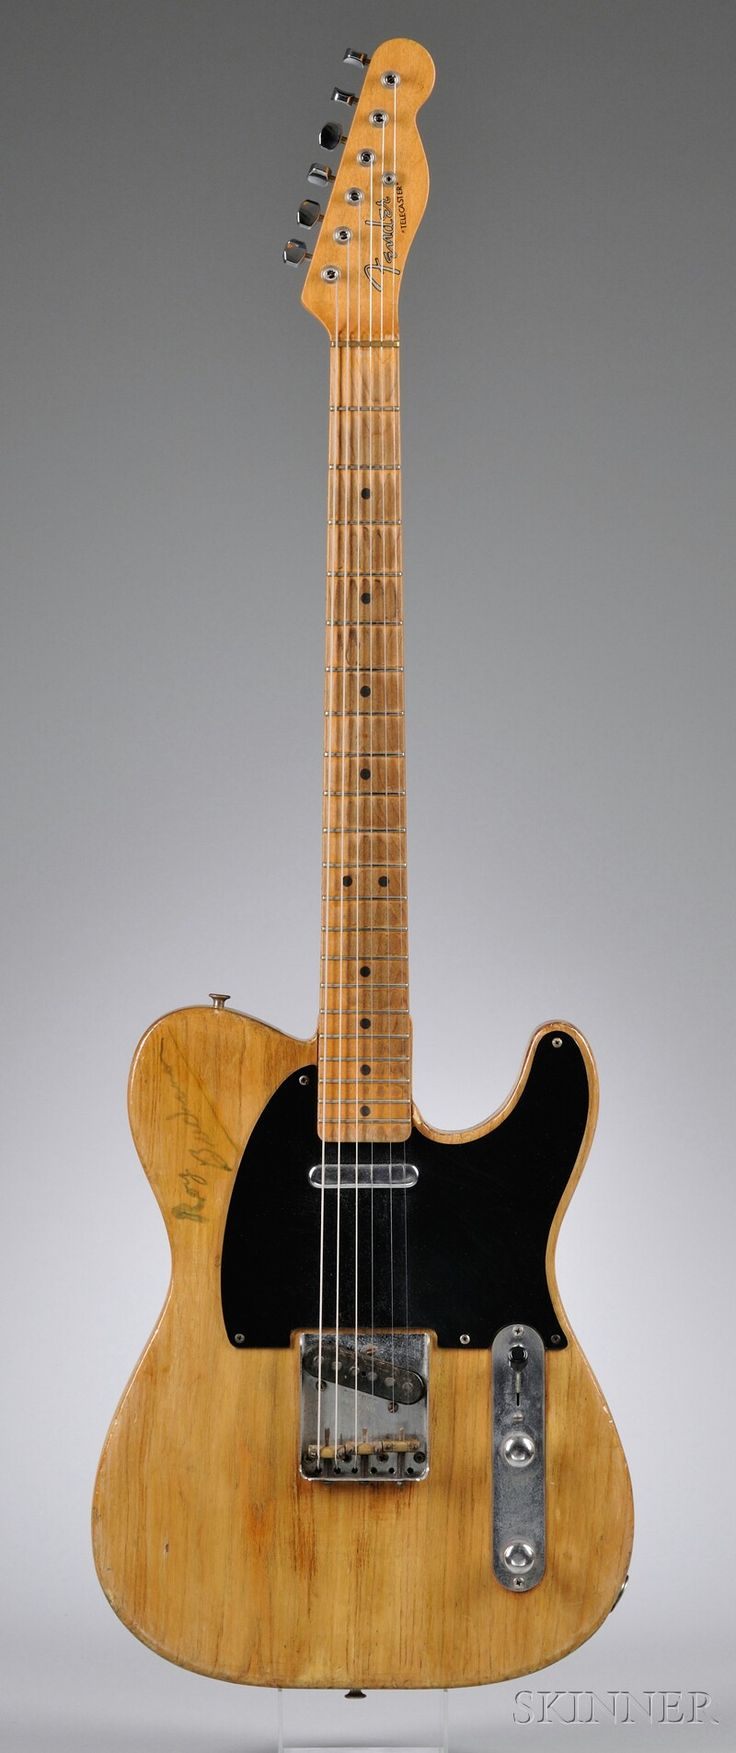 Lot 44   American Electric Guitar, Fender Electric Instruments, Fullerton, 1952/67, Model Telecaster, stamped 0686 on the bridge plate, the later neck, stamped 93089 on the neck plate, signed on the body, length of back 15 3/4 in., with later case and article of ownership.     Provenance: Roy Buchanan, Mark Rowley, Rock Star Rentals.   Estimate $75,000-100,000